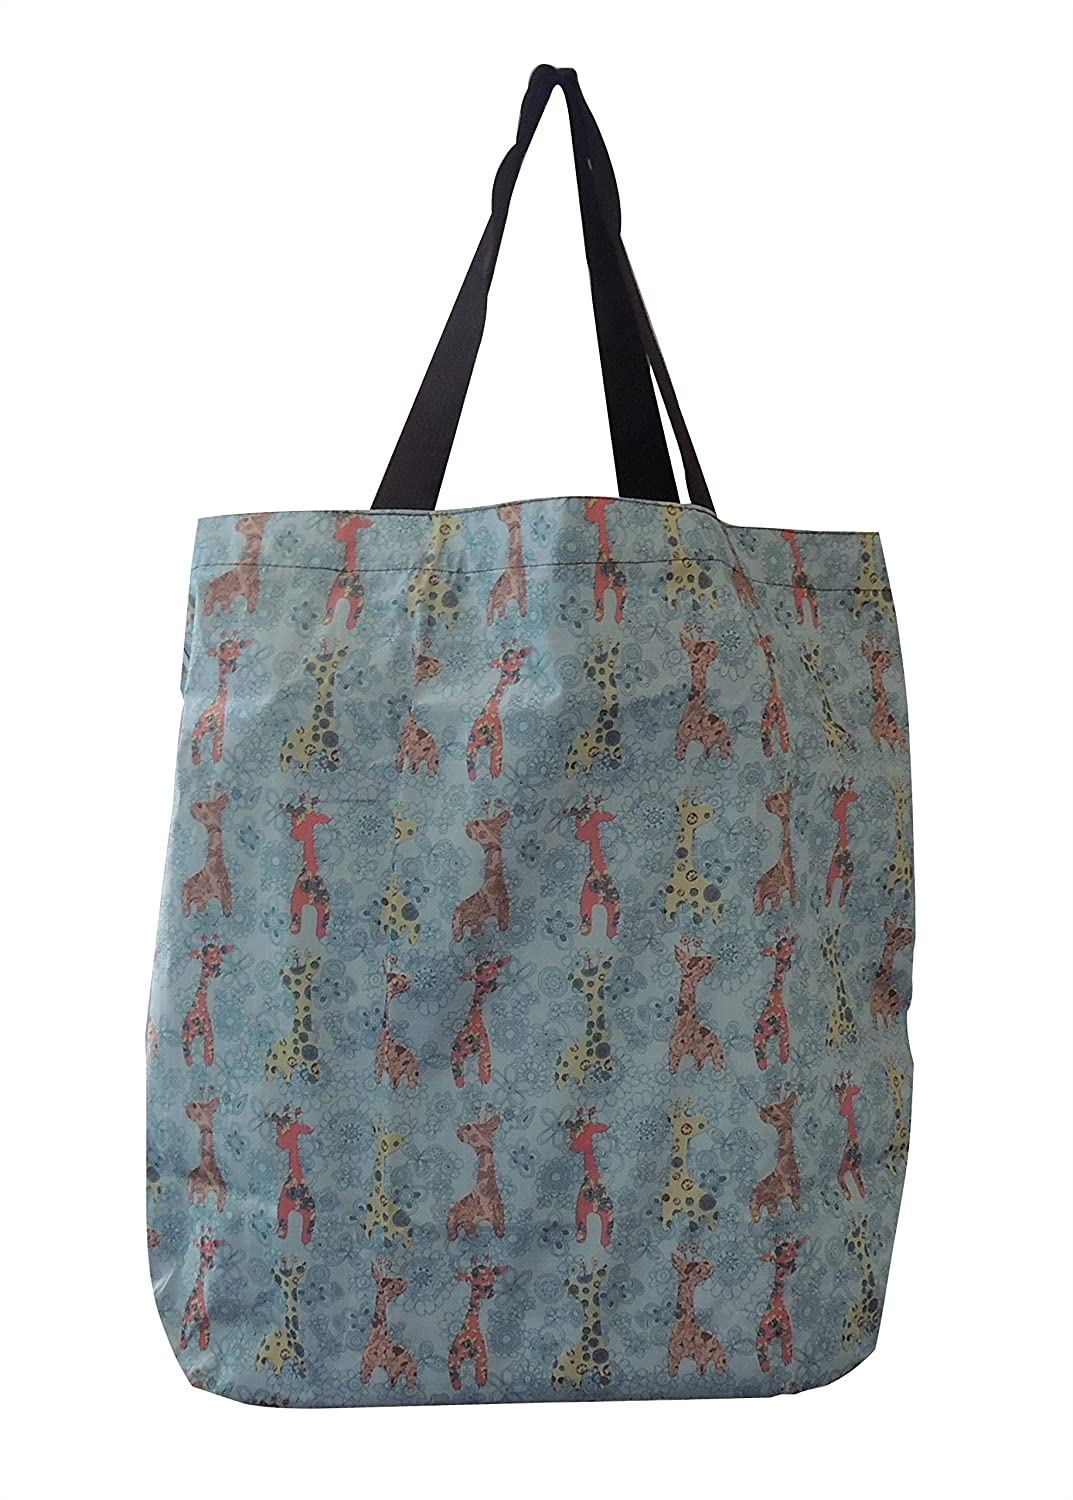 f659c26d5 Amazon.com: Tote Bag - Foldable, Ultra Light, Durable, Great Designs, For  Grocery or Travel, Stores Easily in a Mini Zipper Pocket (Giraffe): Kitchen  & ...